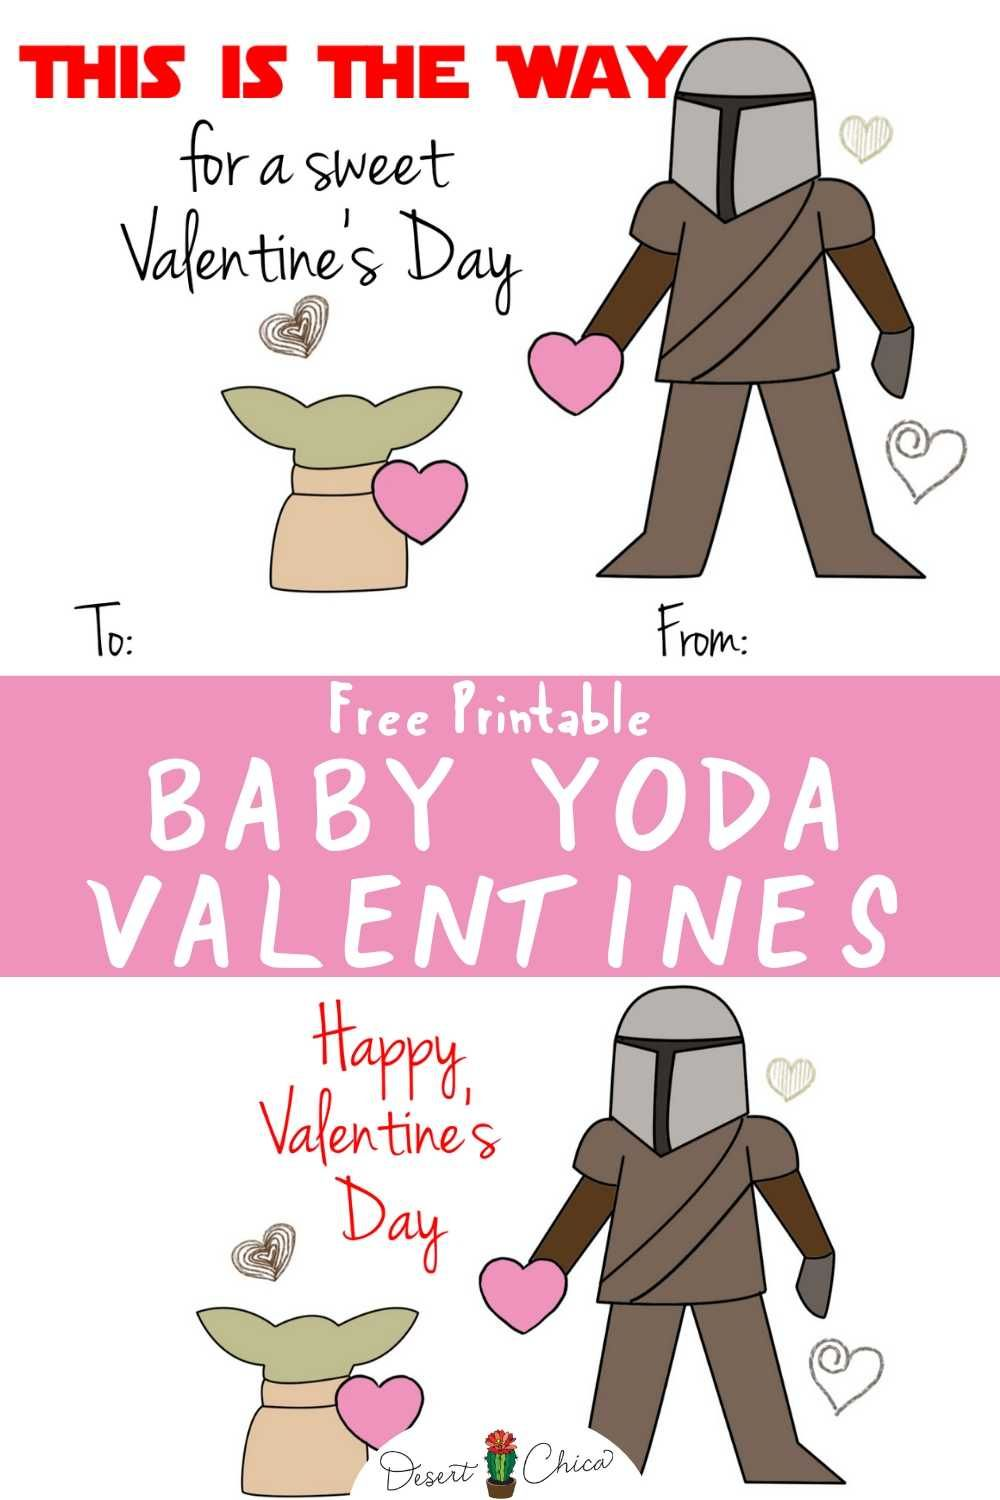 Happy Valentine S Day From Baby Yoda And Mando Star Wars Valentines Yoda Valentine Cards Starwars Valentines Cards